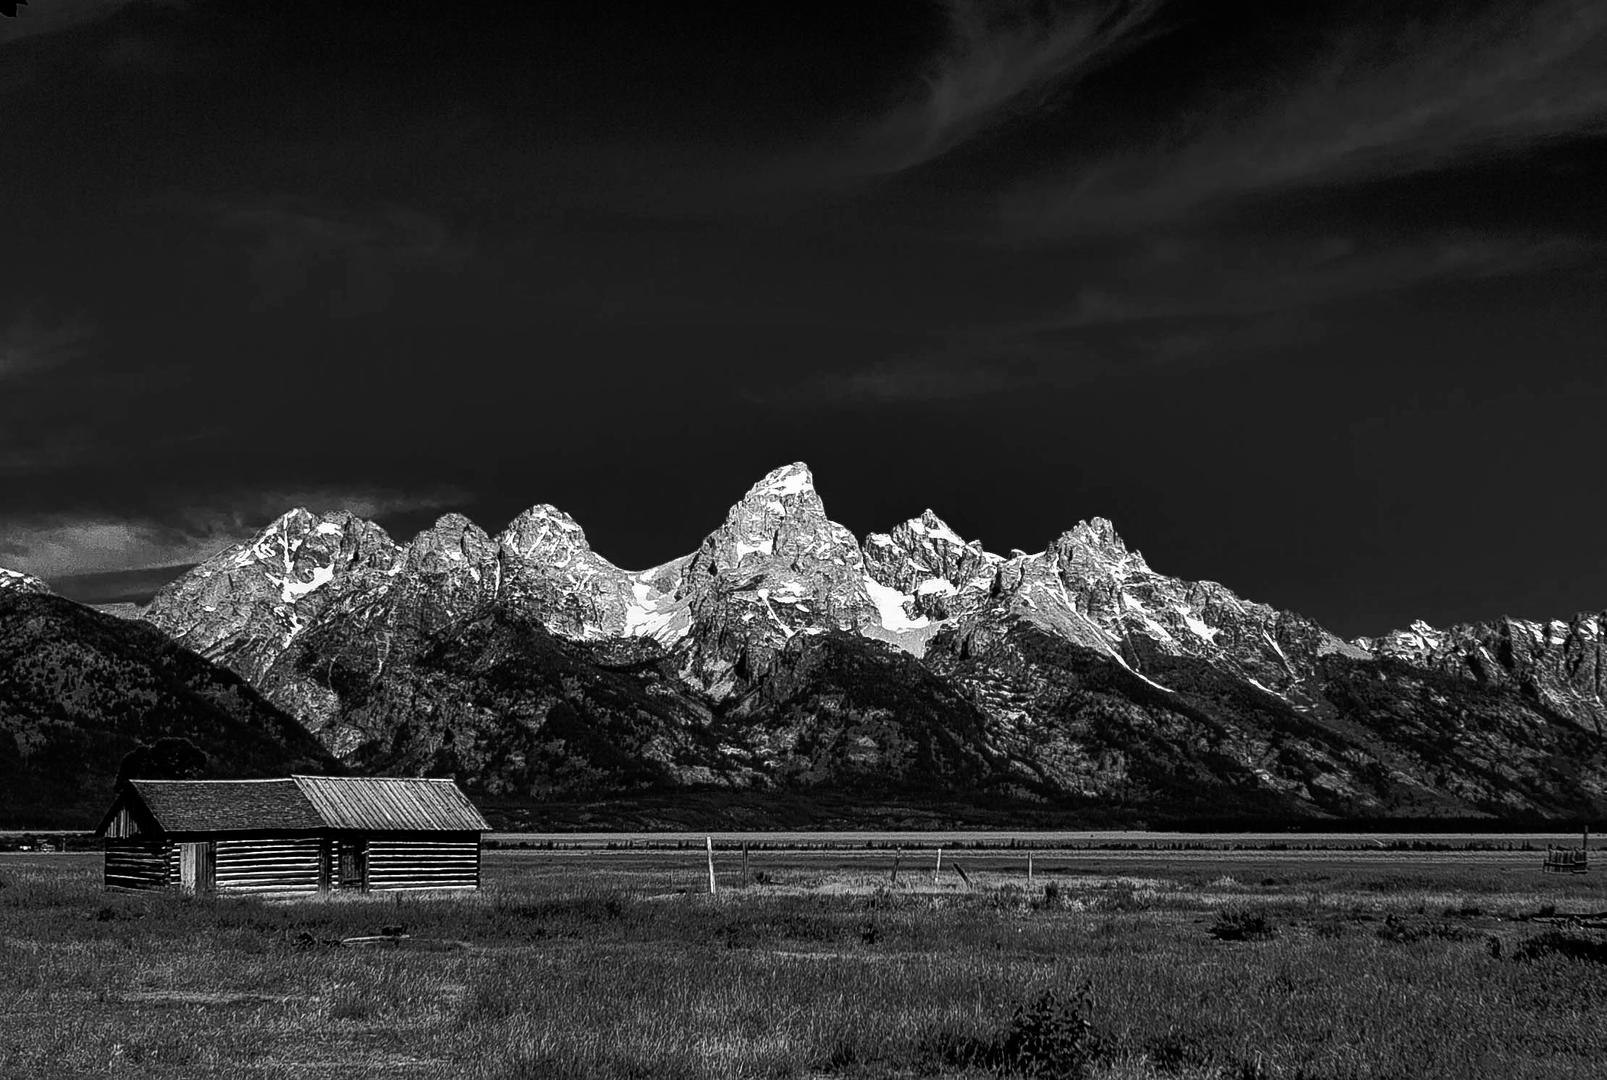 Shooting Black & White Landscapes | Photocrowd Photography Blog